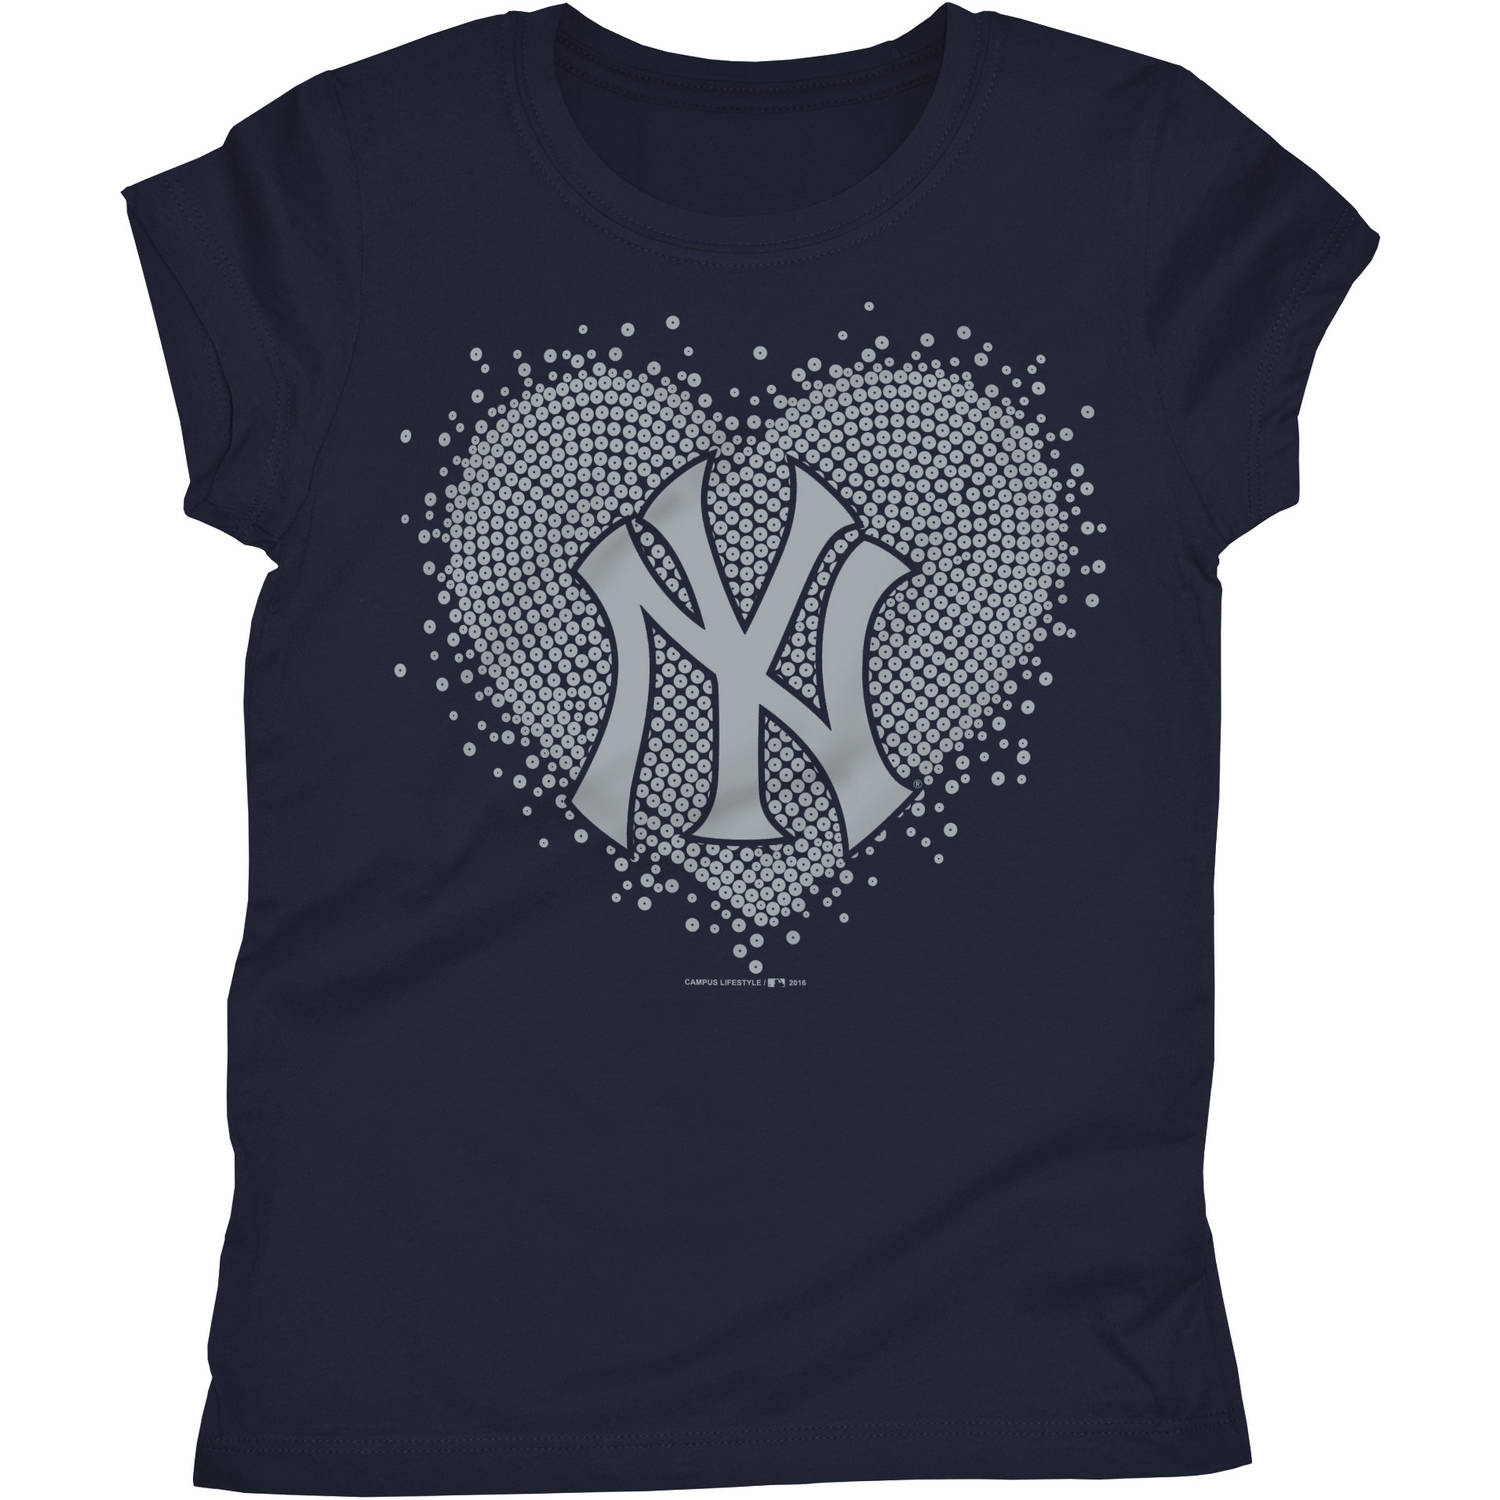 New York Yankees Girls Short Sleeve Graphic Tee